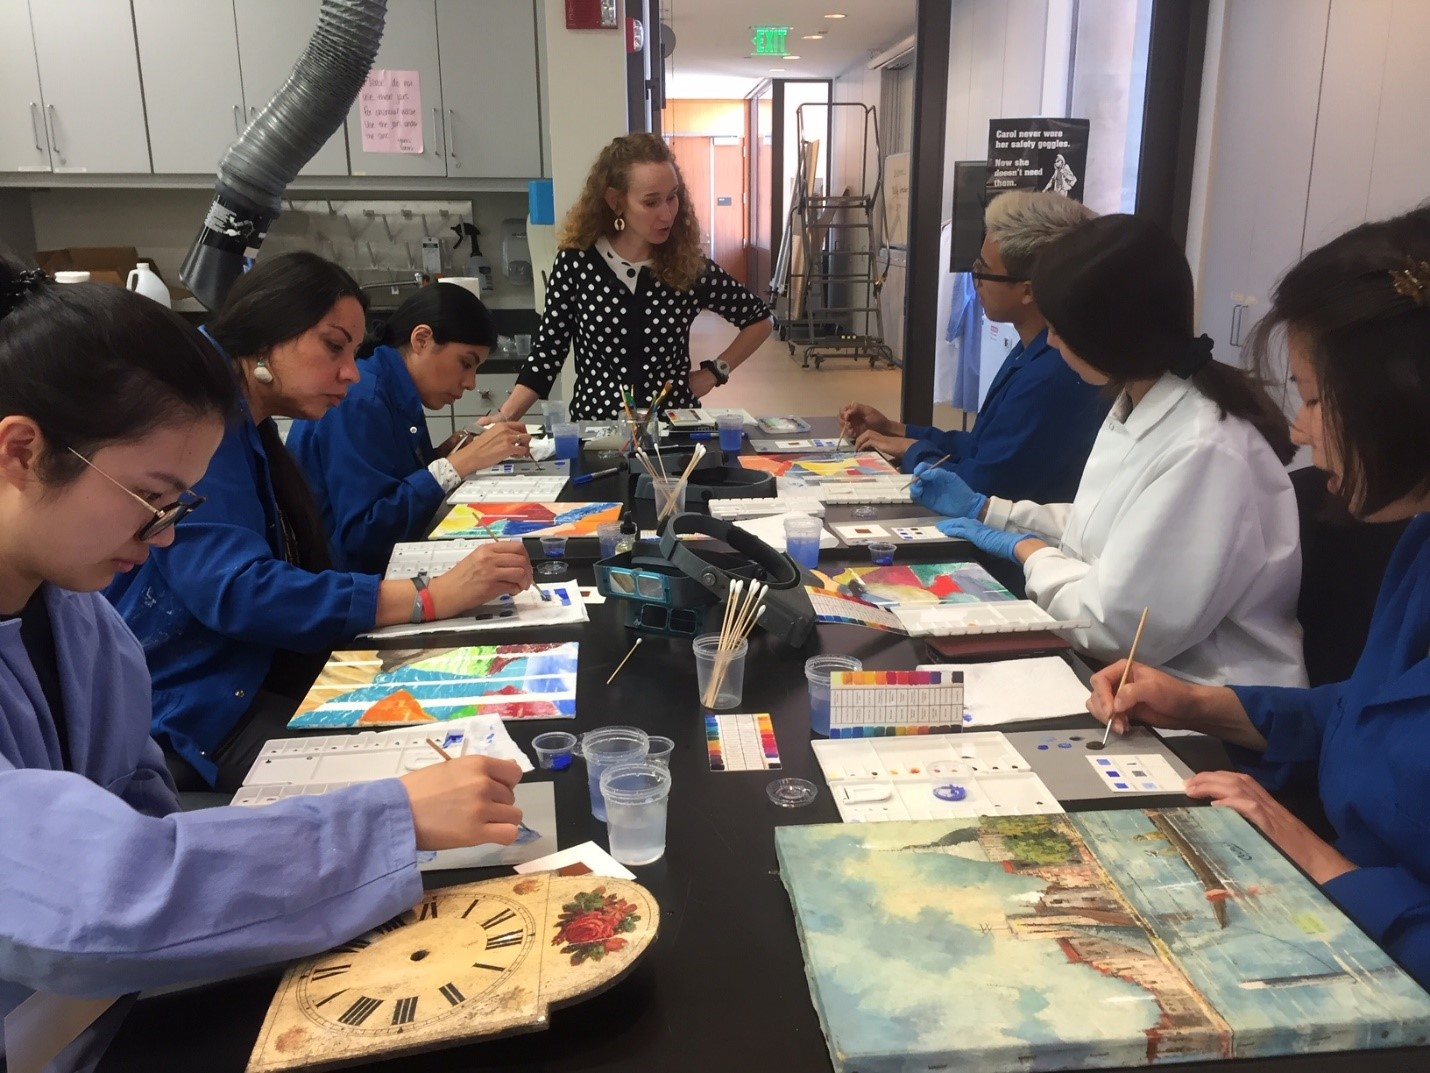 A group of participants trying their hand for the first time at inpainting, supervised by conservator Suzanne Morris. Photo by Ellen Pearlstein.